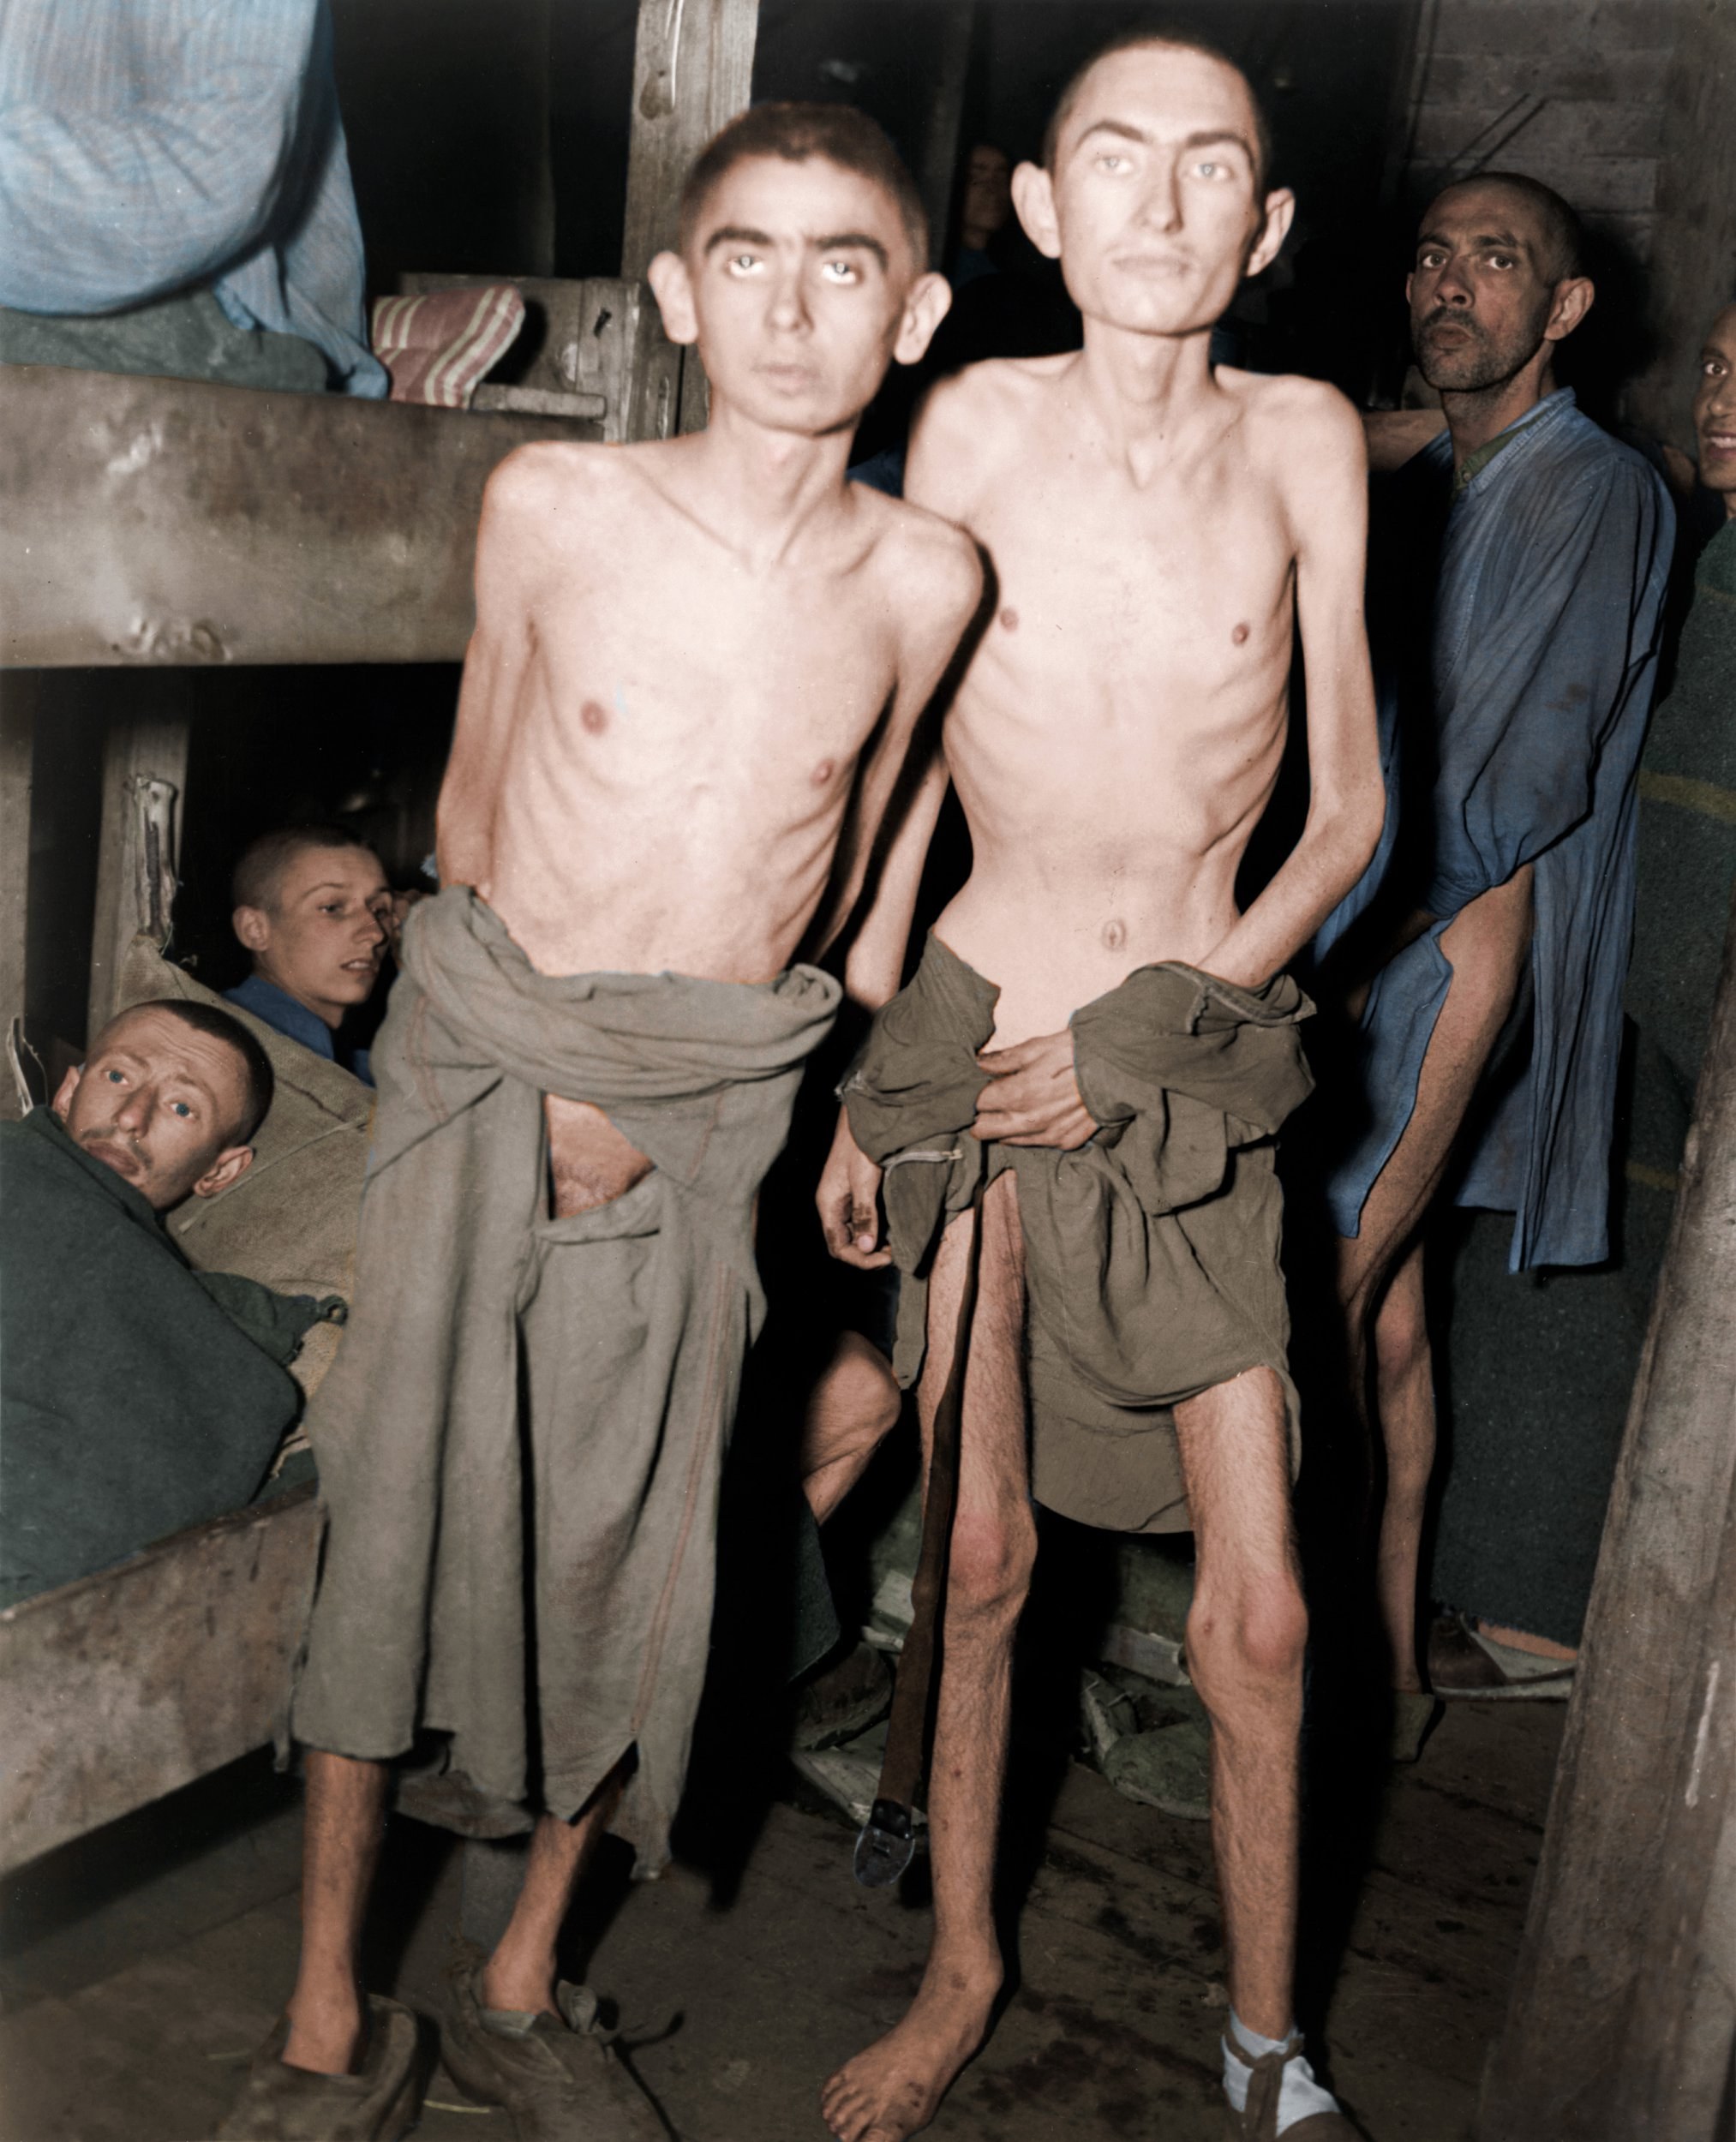 Inmates of the Ampfing subcamps in Germany after having been liberated by U.S. Third Army troops, Germany, 4 May 1945. Subcamps are a lesser known aspect of the concentration camp system in Nazi Germany. Prisoners in the Waldlager V and VI, located near the town of Ampfing, were housed in barracks partially submerged in the ground with soil-covered roofs designed to camouflage the structures from Allied aerial reconnaissance. THE HEARTBREAKING horrors of the Holocaust have been brought into light again thanks to a series of colourised images. Striking shots show Senator Alben W. Barkley, member of a committee investigating Nazi atrocities, looking at a pile of bodies at Buchenwald concentration camp; Jews being executed by German army mobile killing units, the Einsatzgruppen, after they had dug their own graves; and starving children asking for alms in the Warsaw Ghetto. Other horrifying images show thousands of wedding rings the Nazis removed from their victims to salvage the gold, prisoner no.40472 of the Auschwitz concentration camp who was identified as Michal Loborski and members of the 42nd Rainbow Division, 7th US Army uncovering a wagon transporting some of the horrors of Dachau. The original black and white photographs were colourised by Joel Bellviure (17) who lives between Palma, Mallorca and Barcelona, Spain. Joel Bellviure / mediadrumworld.com